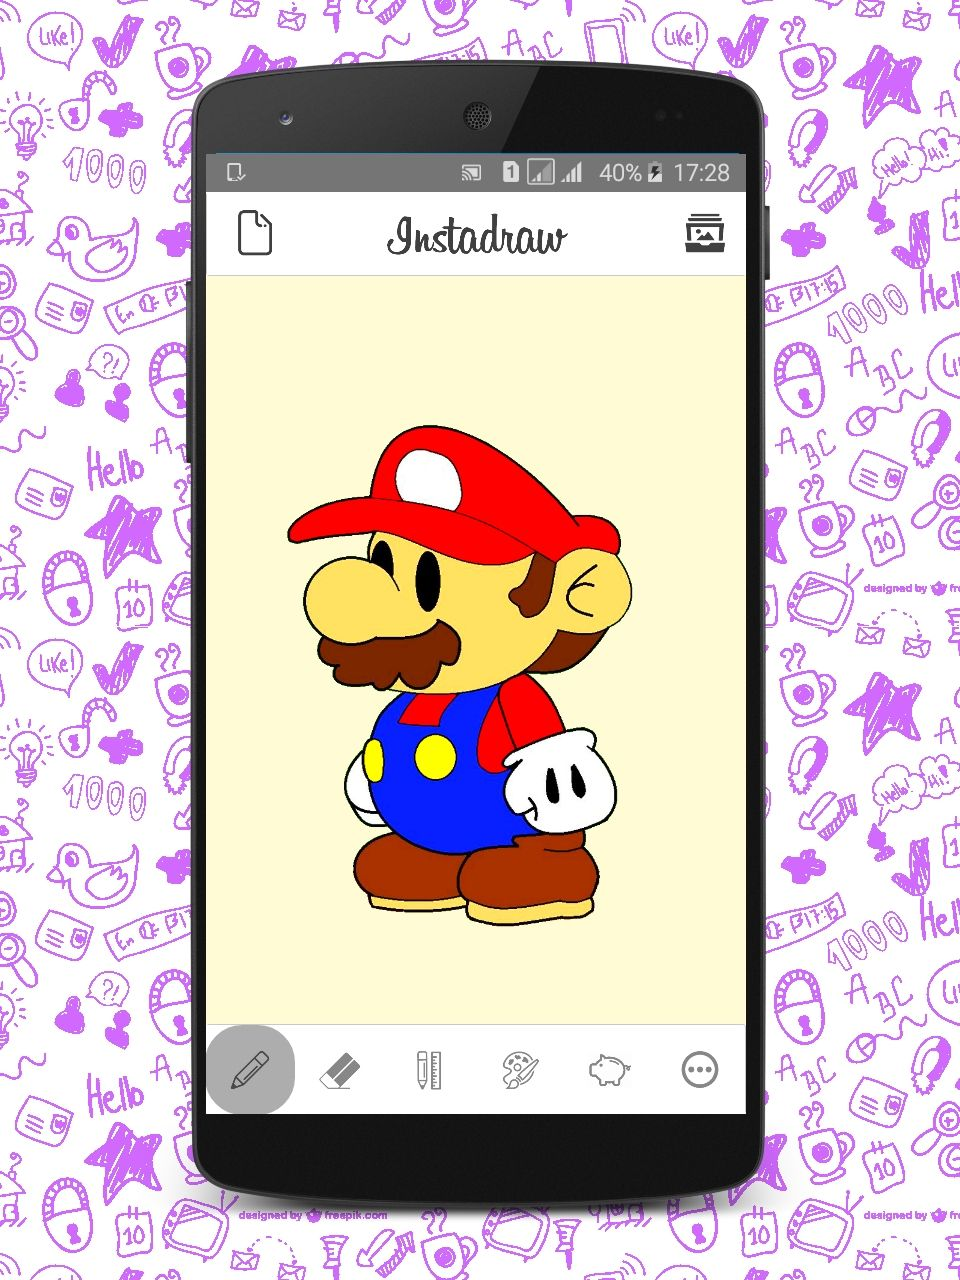 Instadraw - Android Drawing App Template Screenshot 1